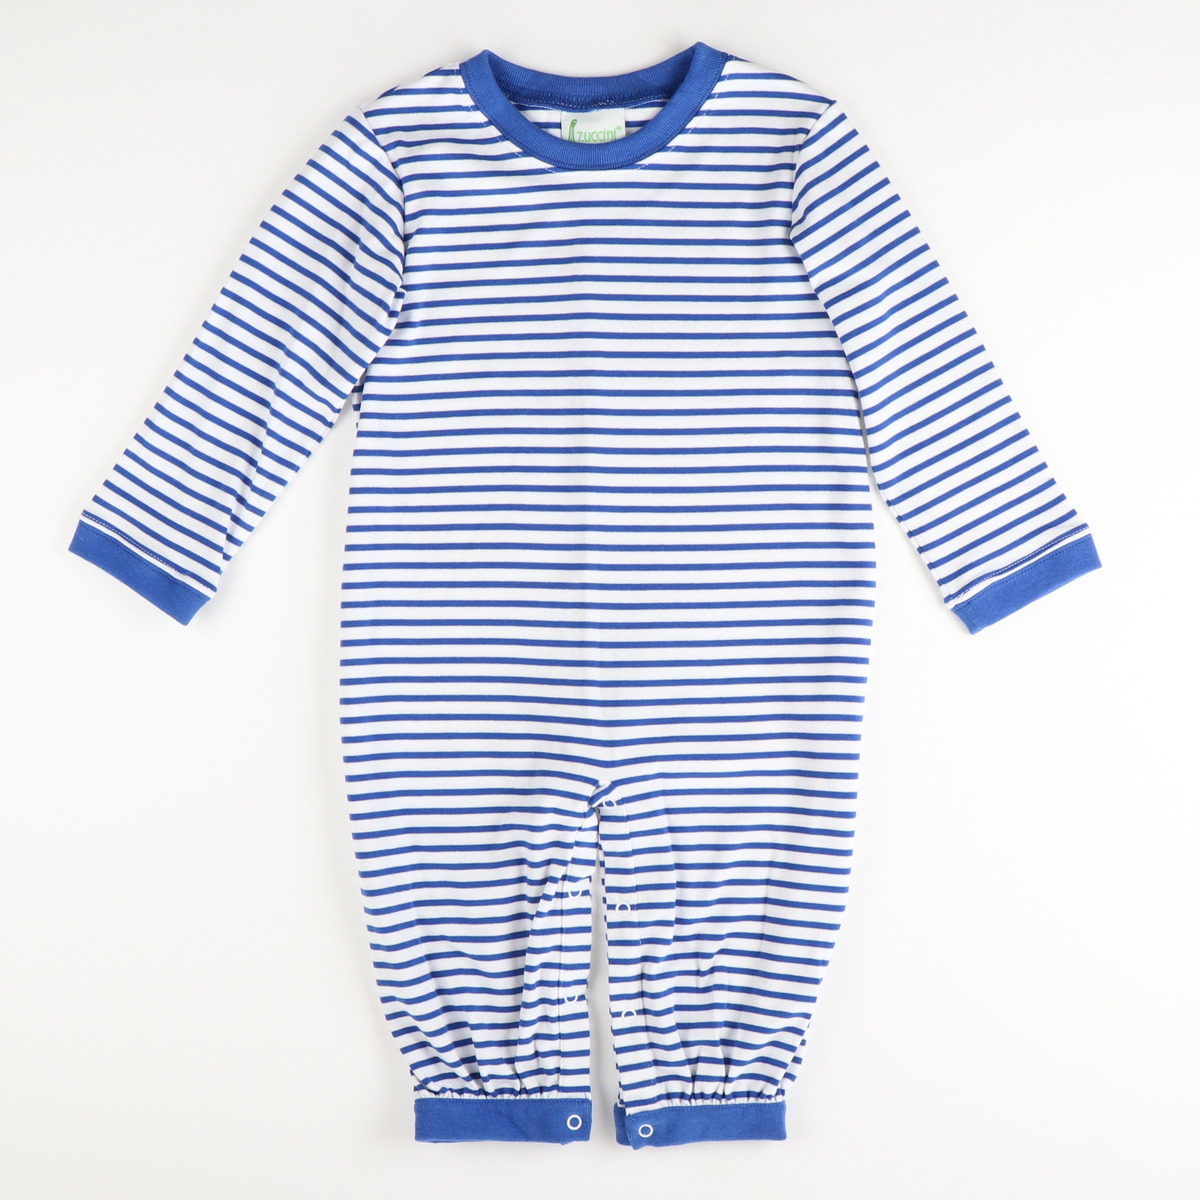 Classic Boys Long Bubble - Royal Stripe Knit